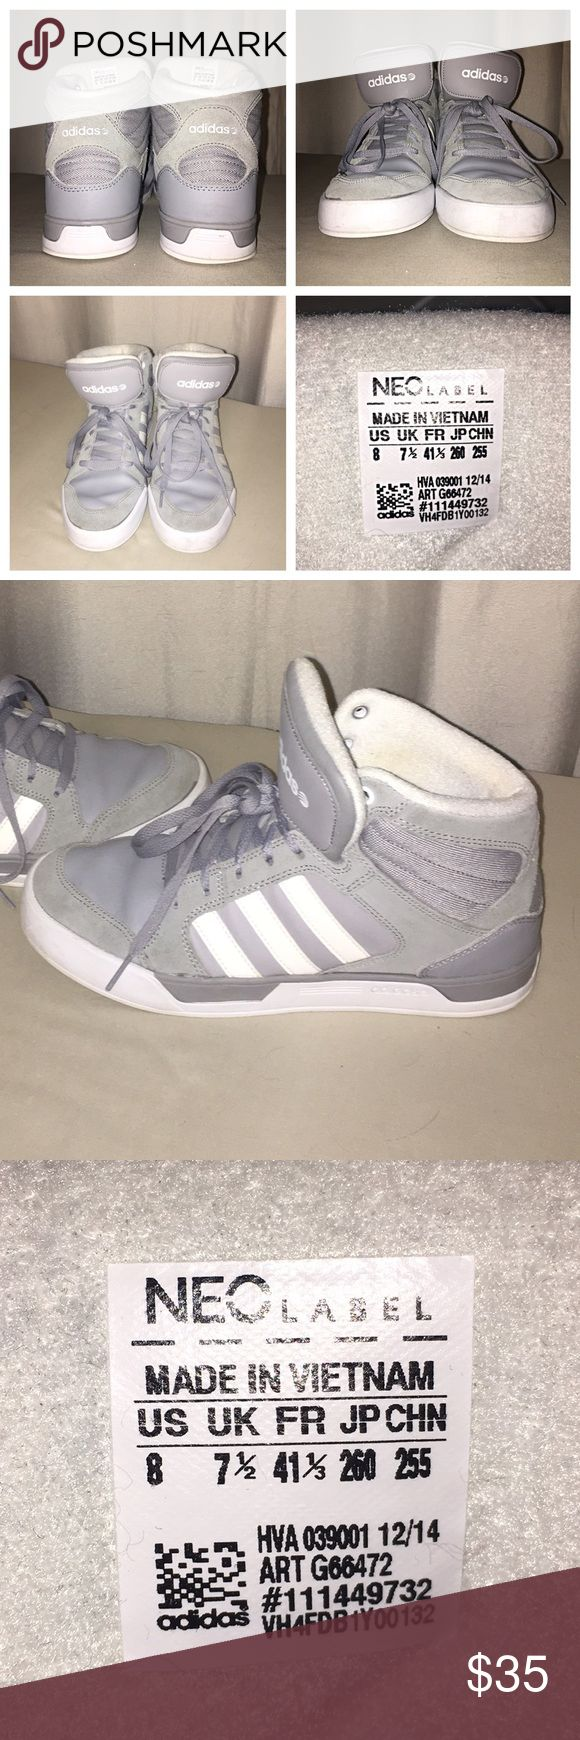 Adidas Neo Grey Suede Hightops Worn about 1/2 dozen times, uppers and insole in near perfect condition.  Sole has a few markings and the bottoms are a bit dirty but not worn.  Fits men's 8 women's 9. (I am an 8.5 and have decided to find a pair that fits a little better.) Adidas Shoes Sneakers